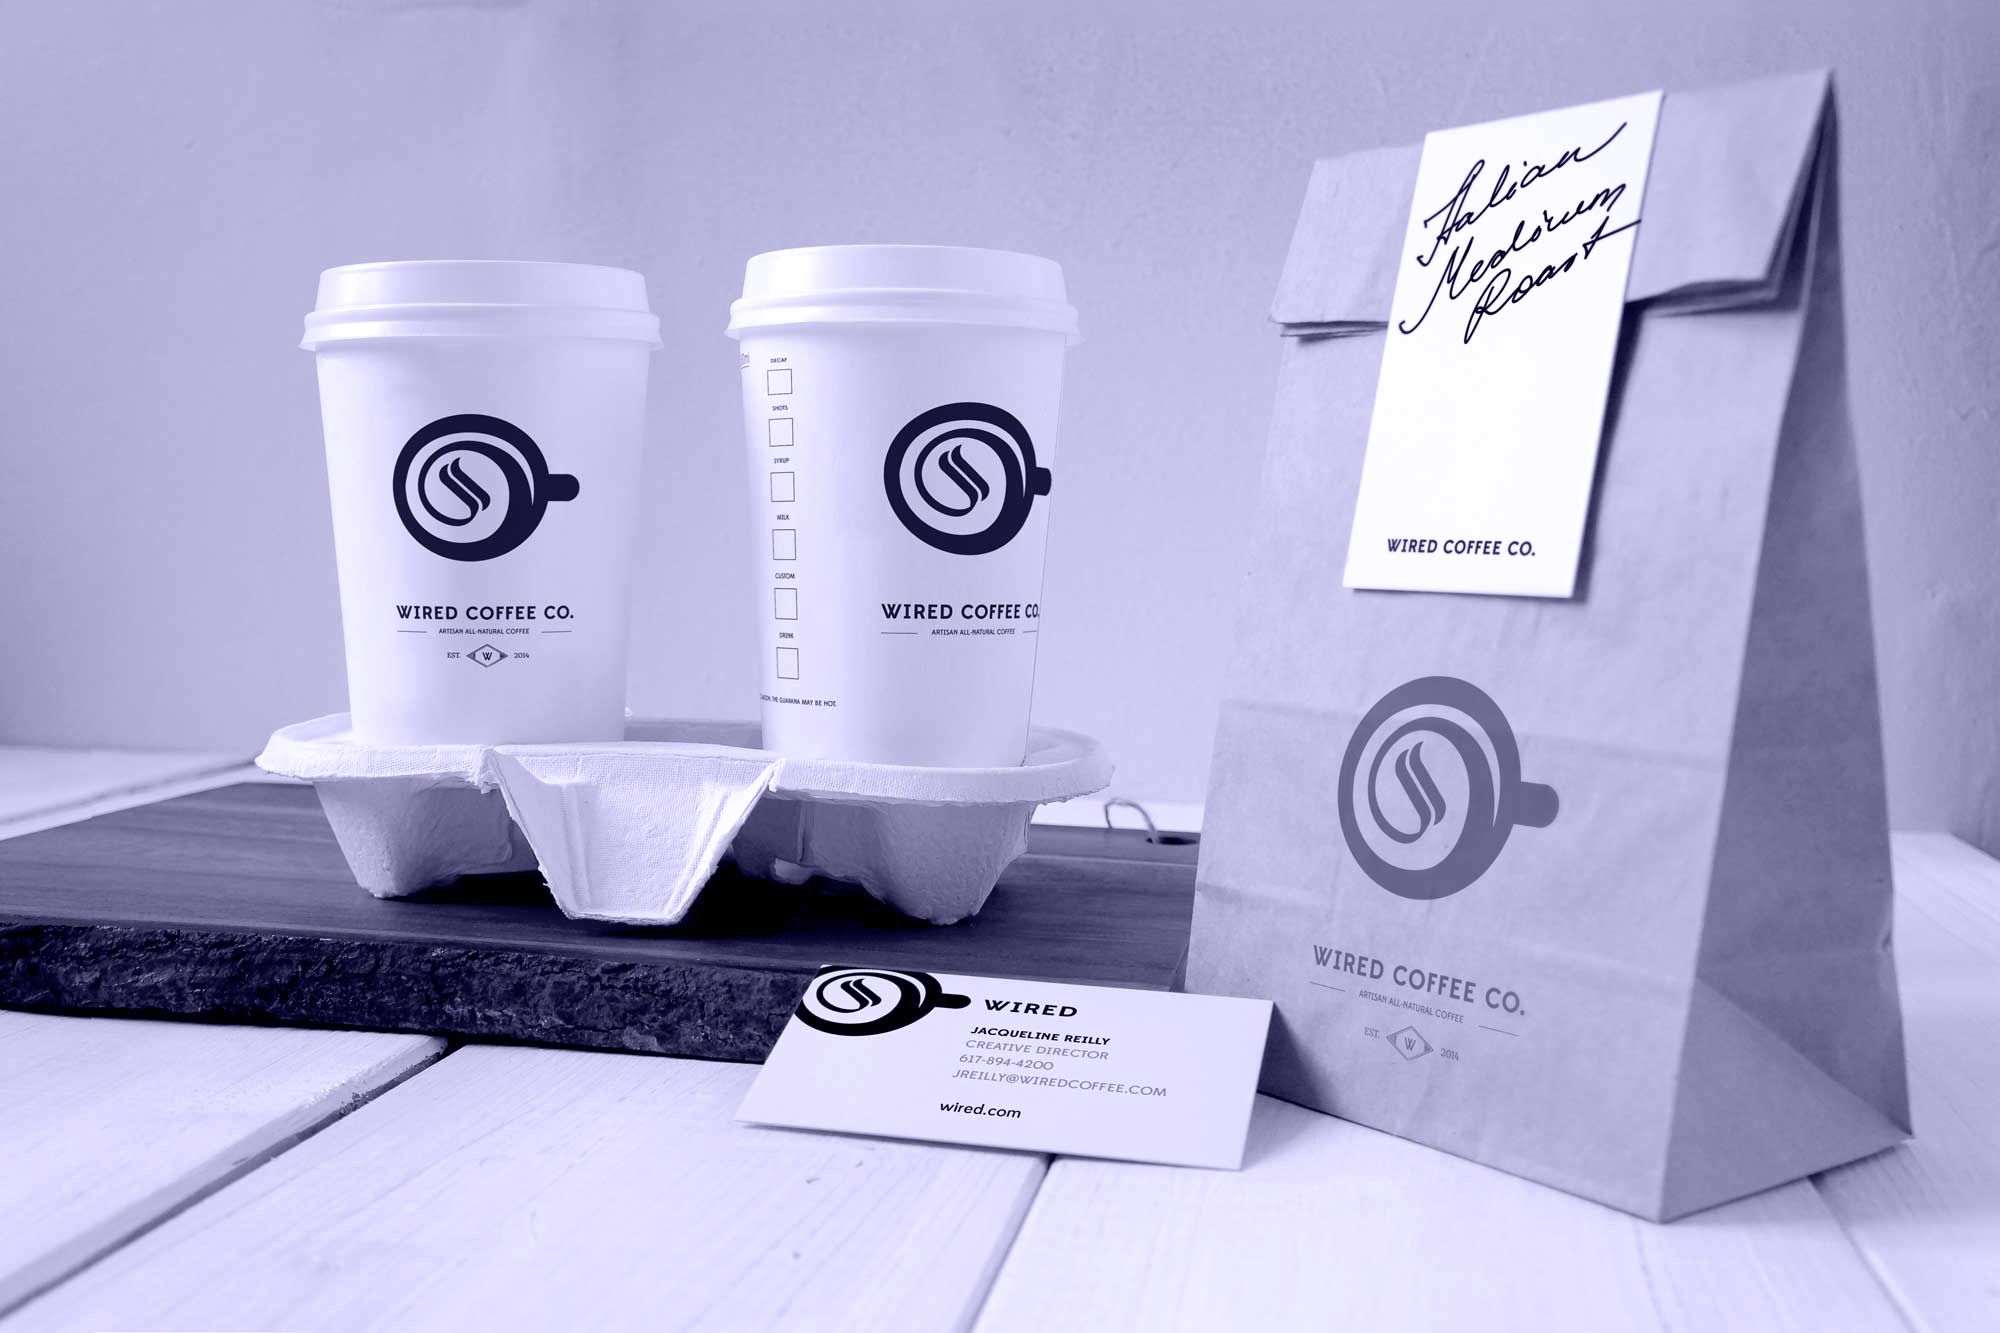 Wired Coffee Branding